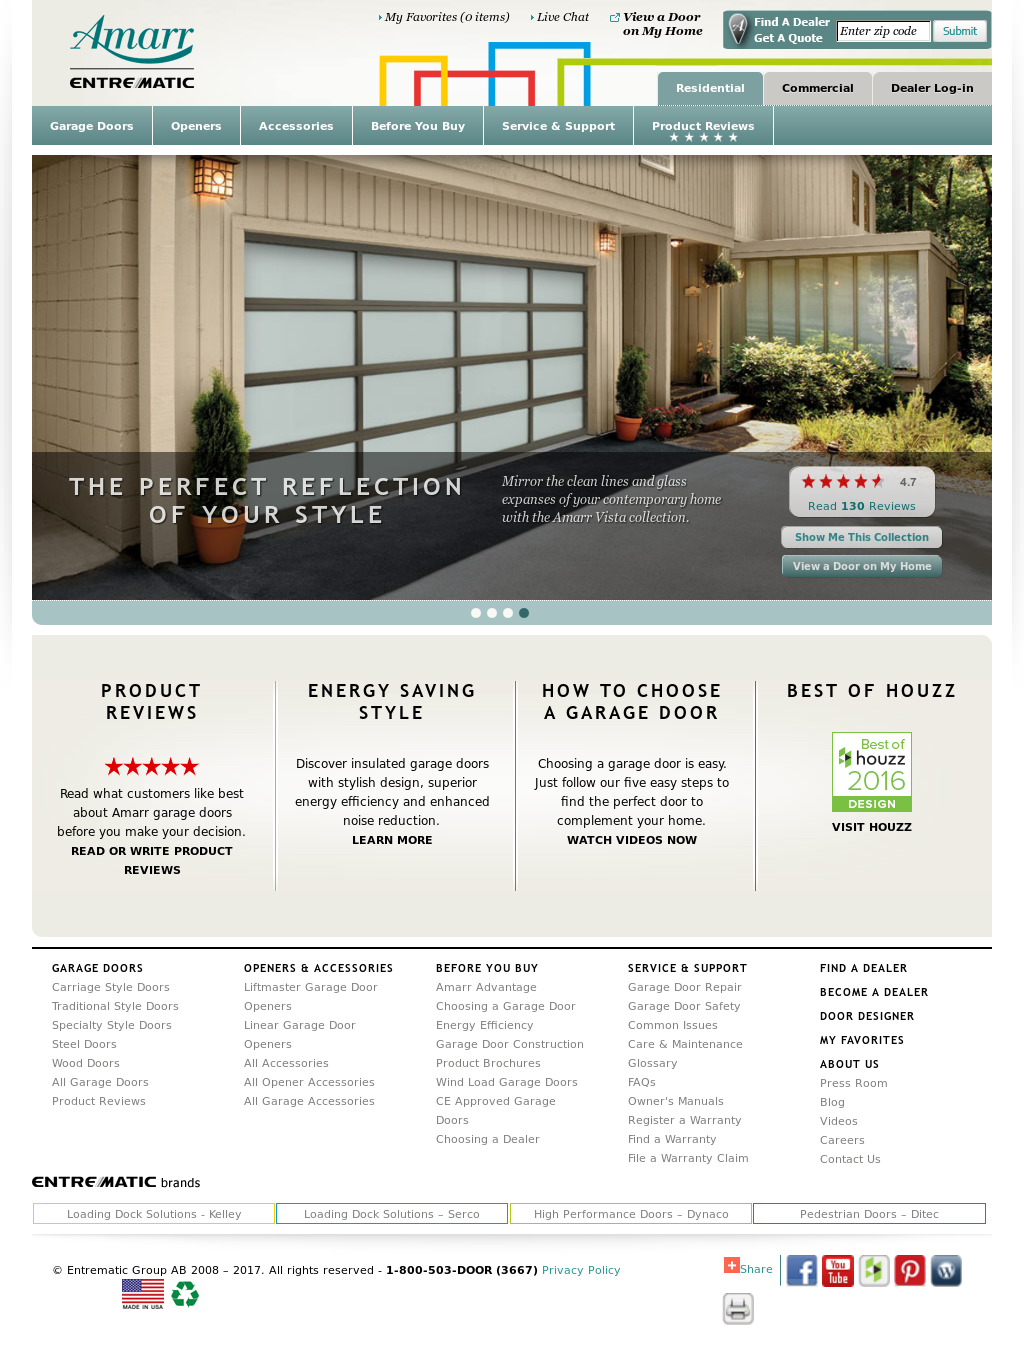 Amarr Garage Doors Competitors, Revenue and Employees